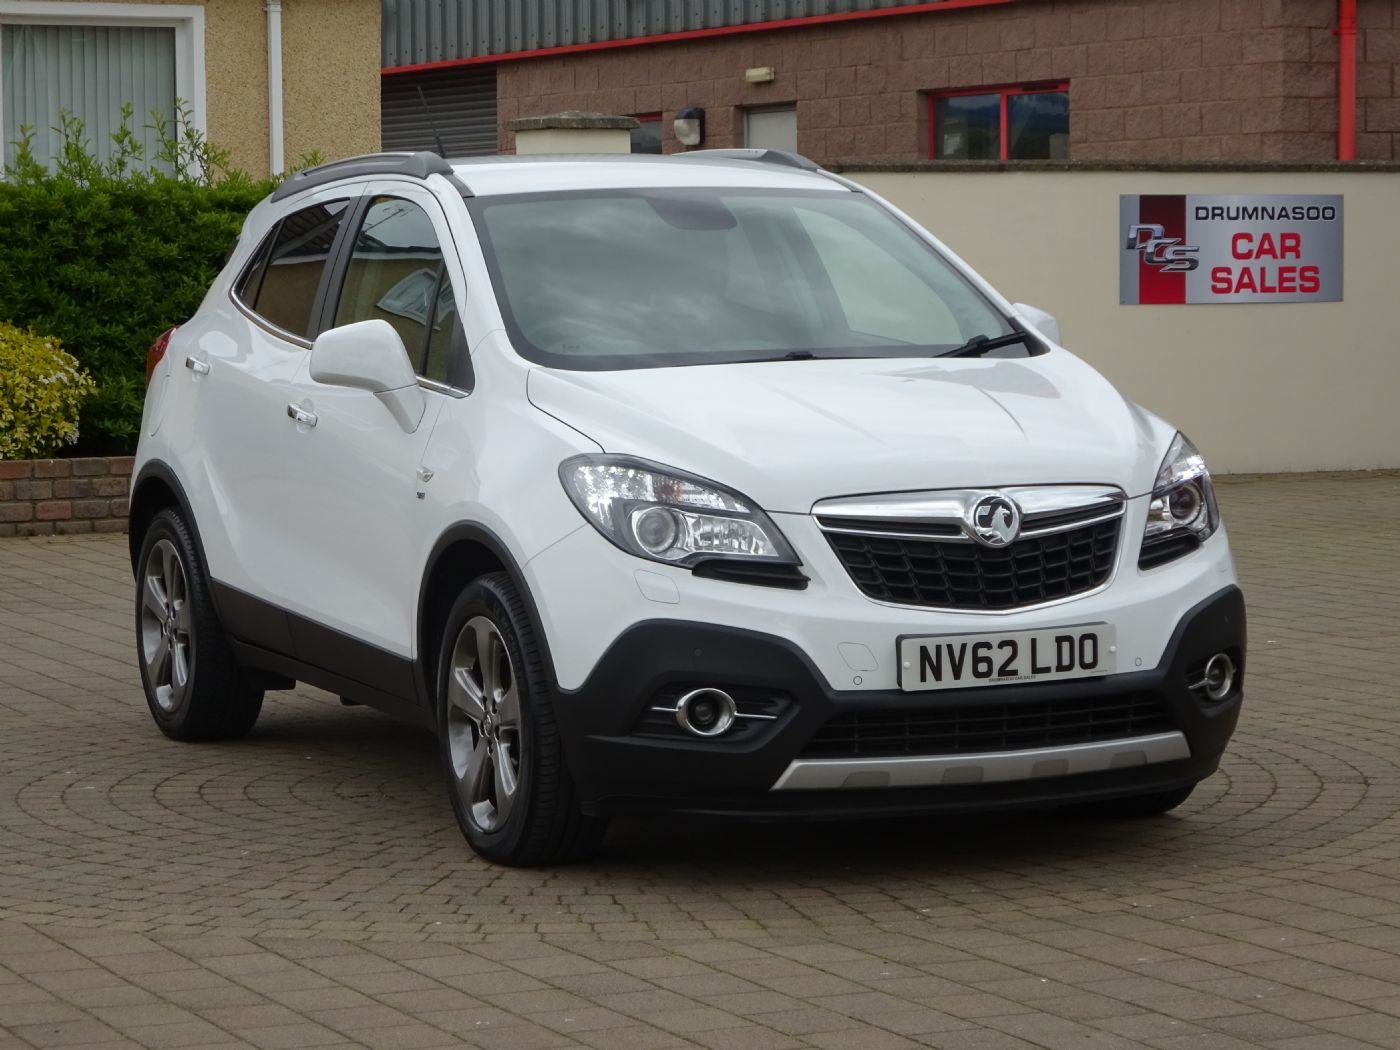 Vauxhall Mokka SE 1.7 CDTI , Leather & Heated seats